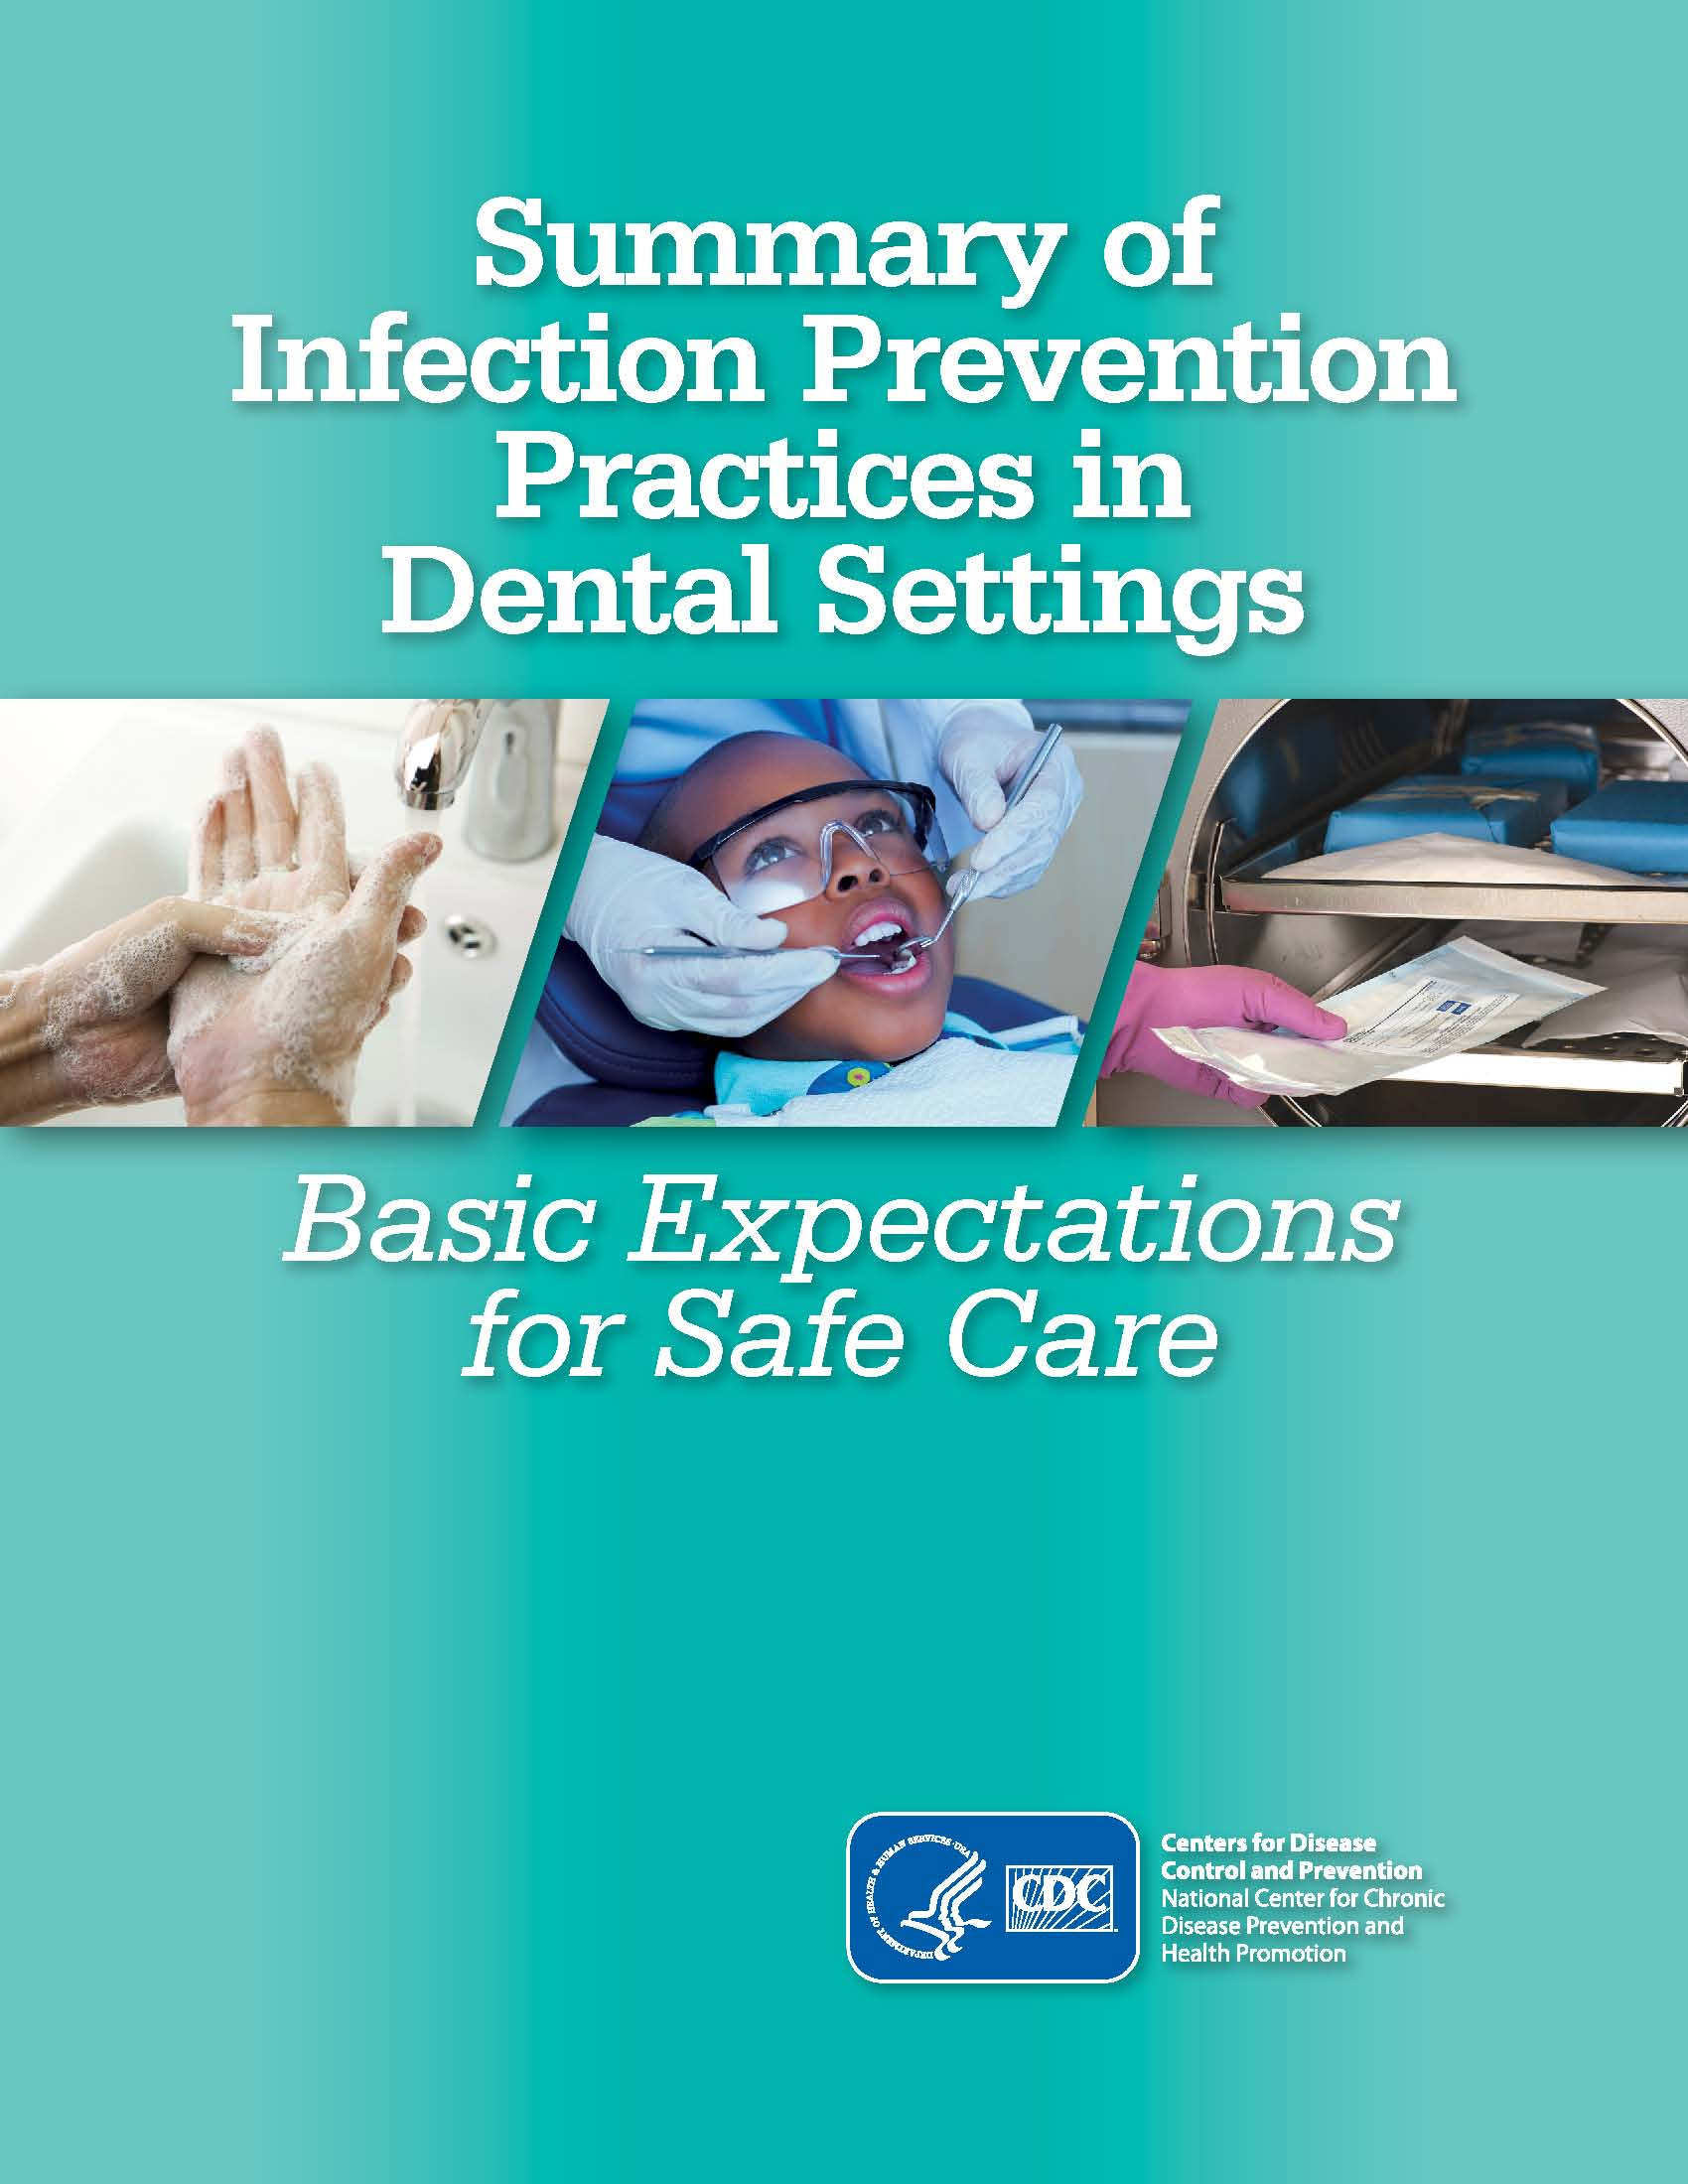 2016 CDC Guidelines for Infection Control in Dental Settings